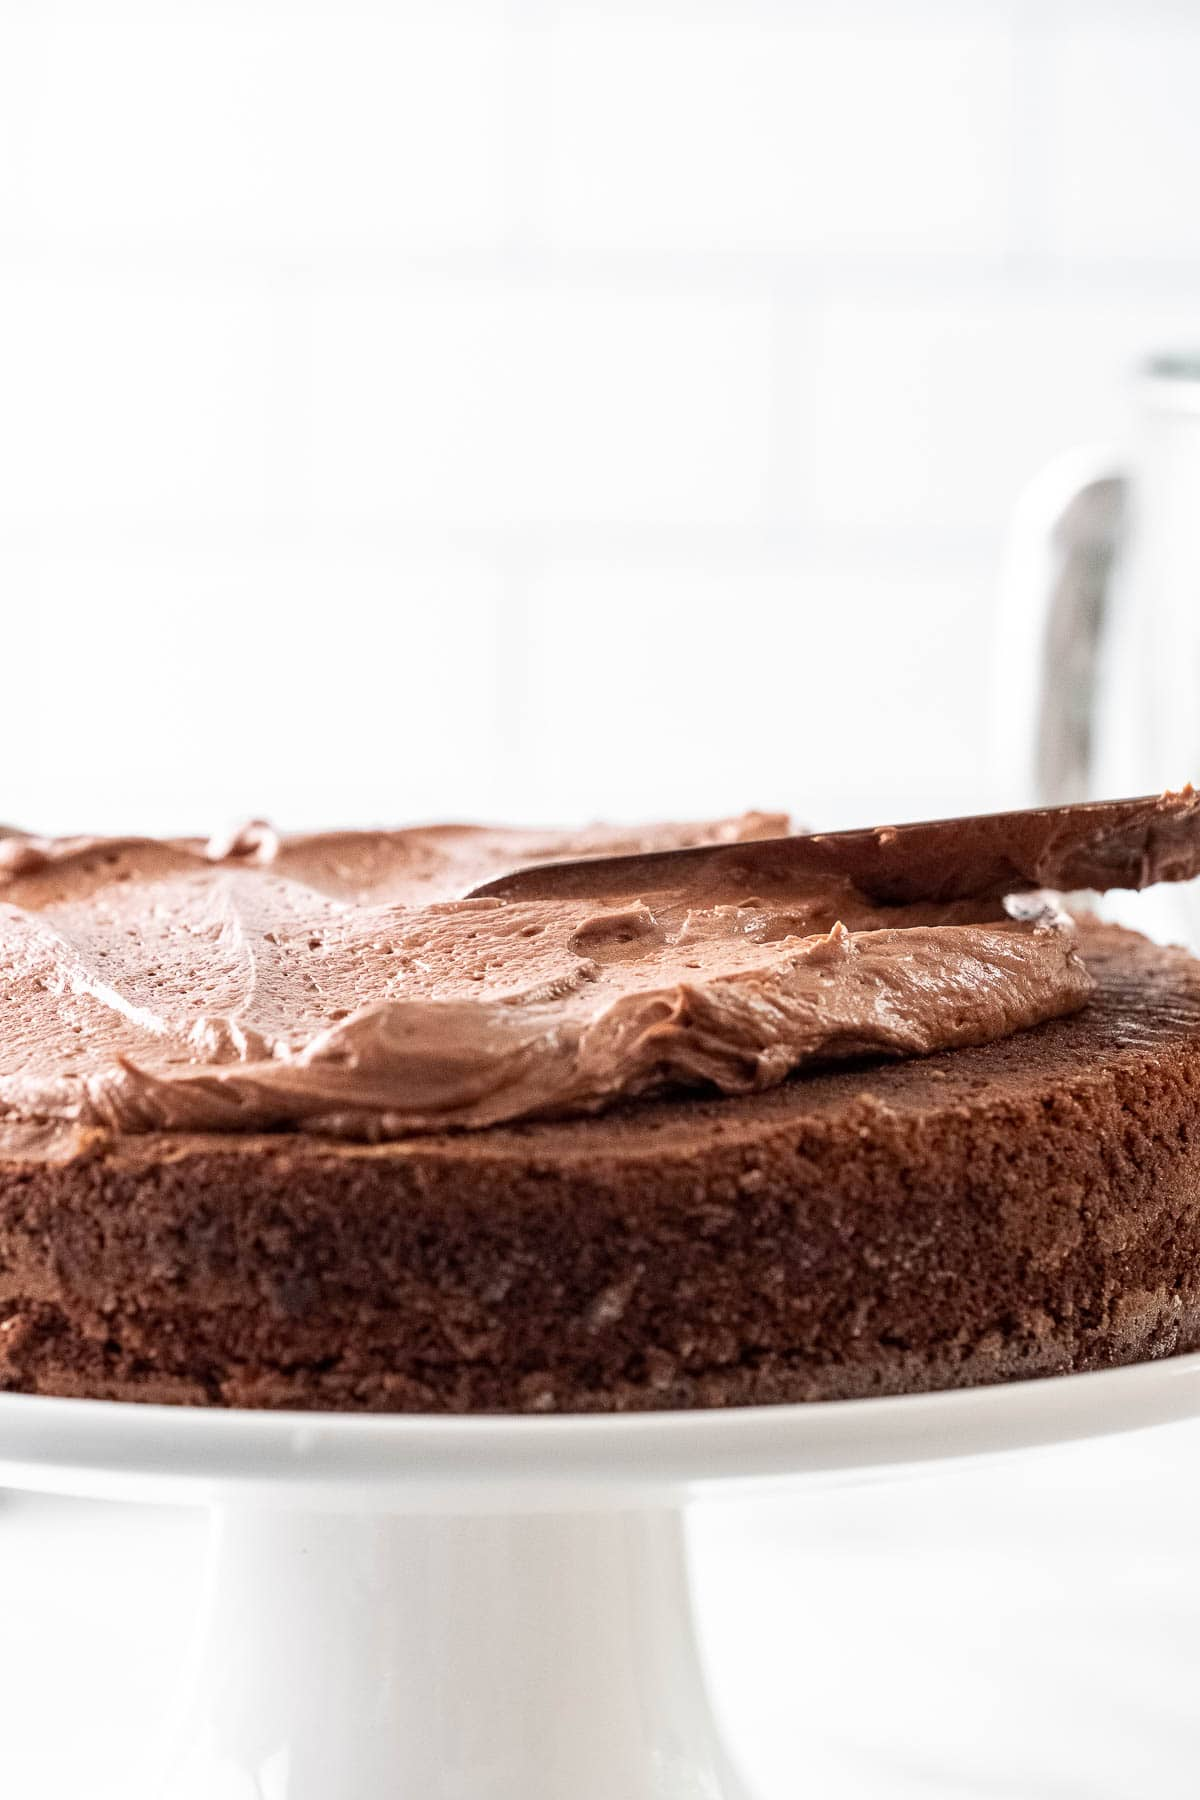 chocolate frosting being spread onto a chocolate layer cake